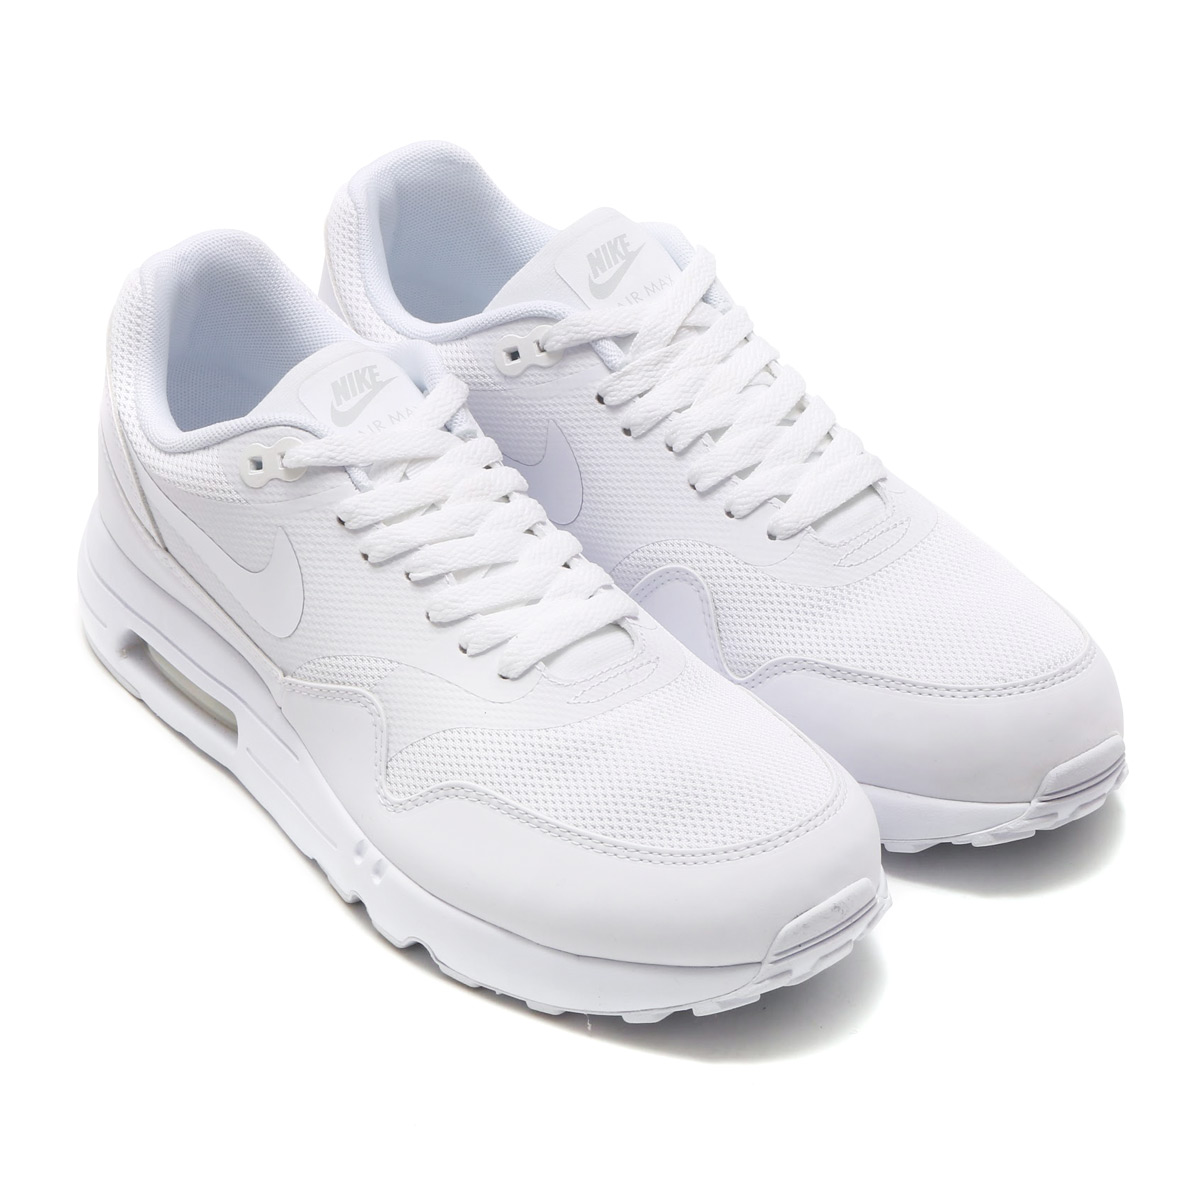 newest 911c8 89465 Walk the sky  wear it, and, for a feeling, the best comfort is realized Air  Max 1 in history. Upper of the textile holds weight in check, and mid sole  with ...